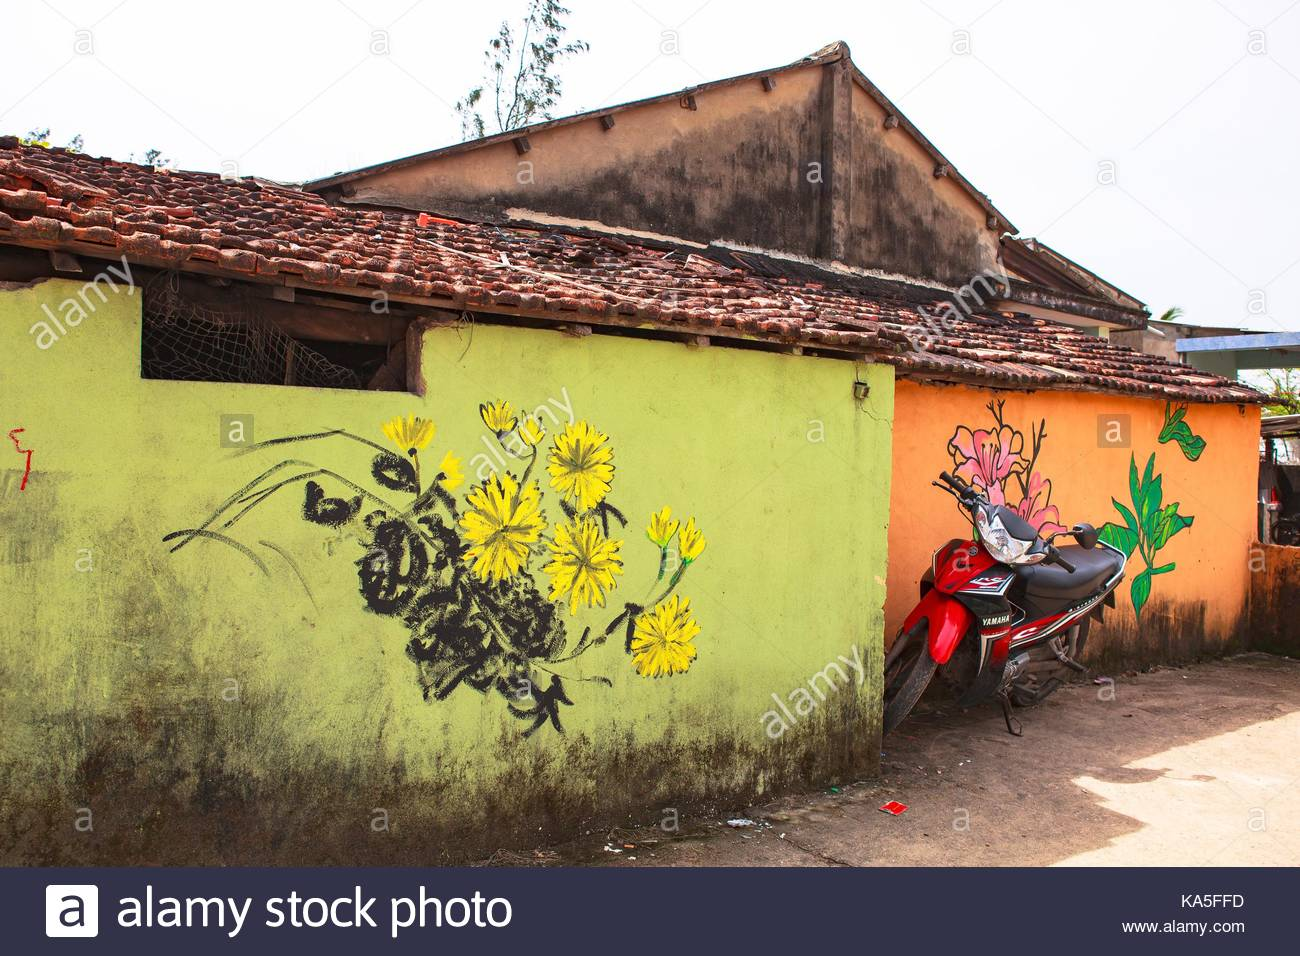 TAM THANH, TAM KY, VIETNAM - MARCH 16, 2017: Painted wall, Street ...